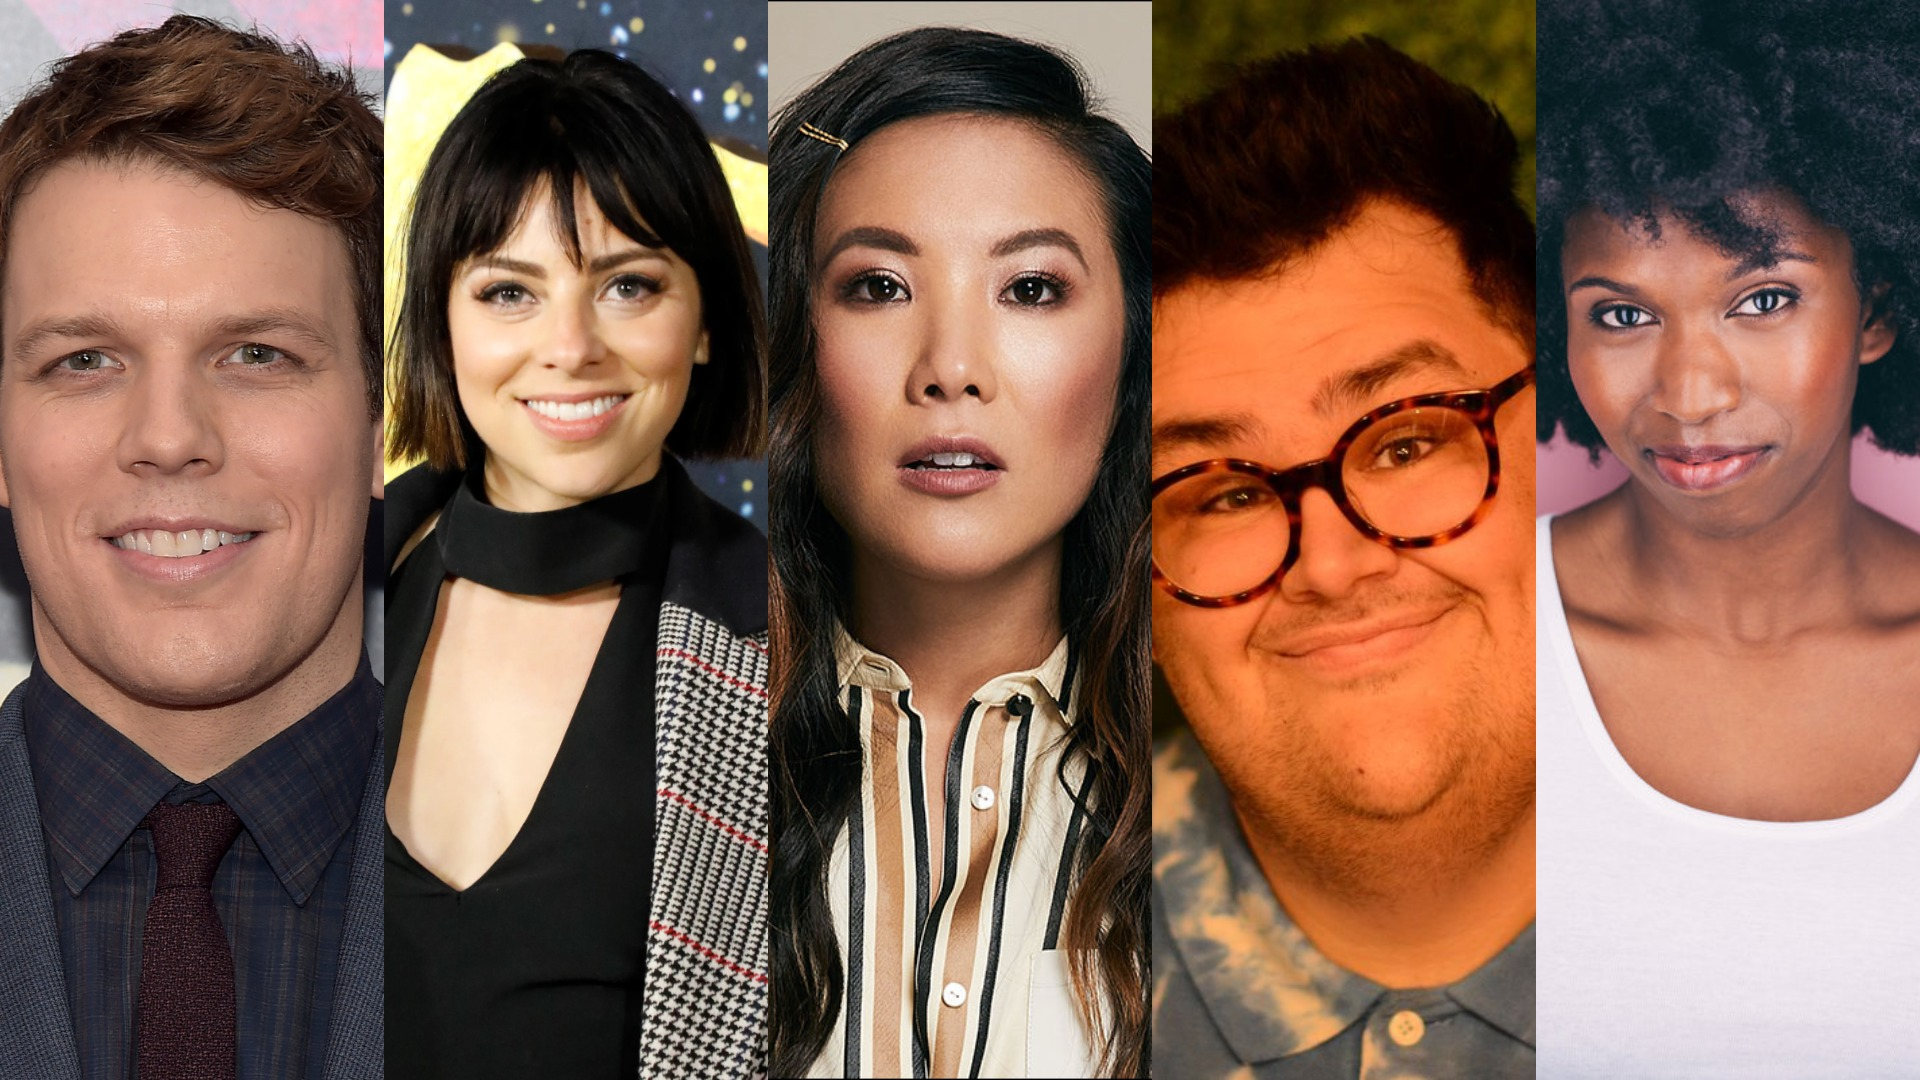 Deadline is exclusively reporting that Jake Lacy and Krysta Rodriguez have been cast as leads, with Ally Maki, Caleb Hearon and Rachel Pegram also cast in the TBS romantic-comedy pilot Space.